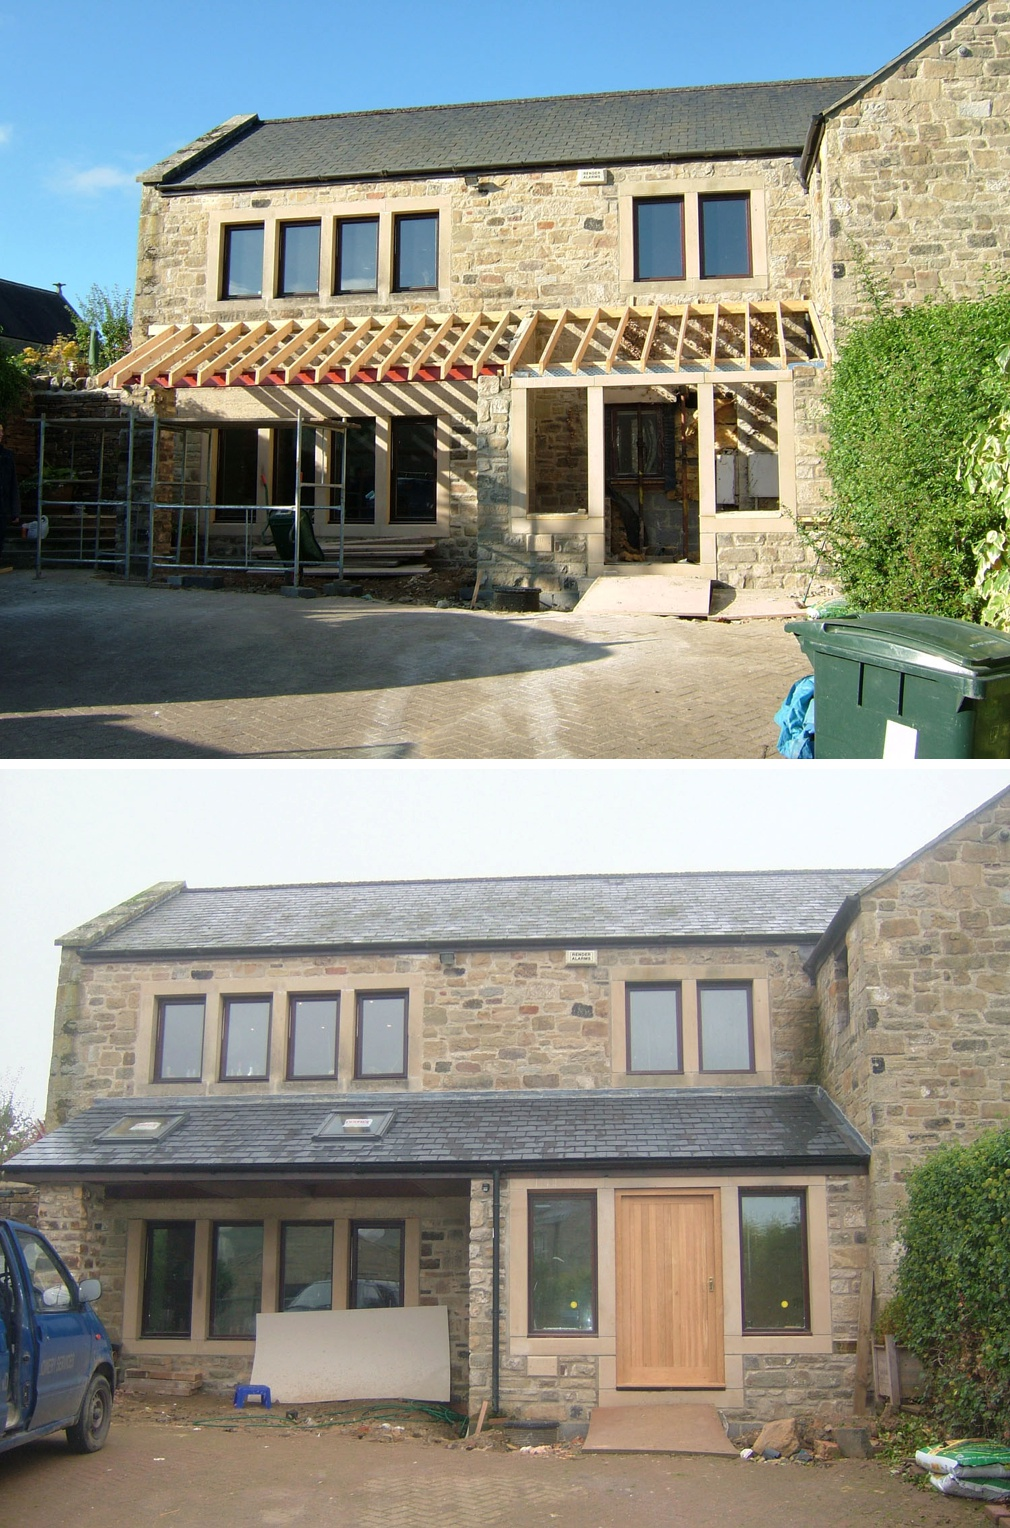 H-and-M-Construction-Owls-House-Cotherstone-Co-Durham-4